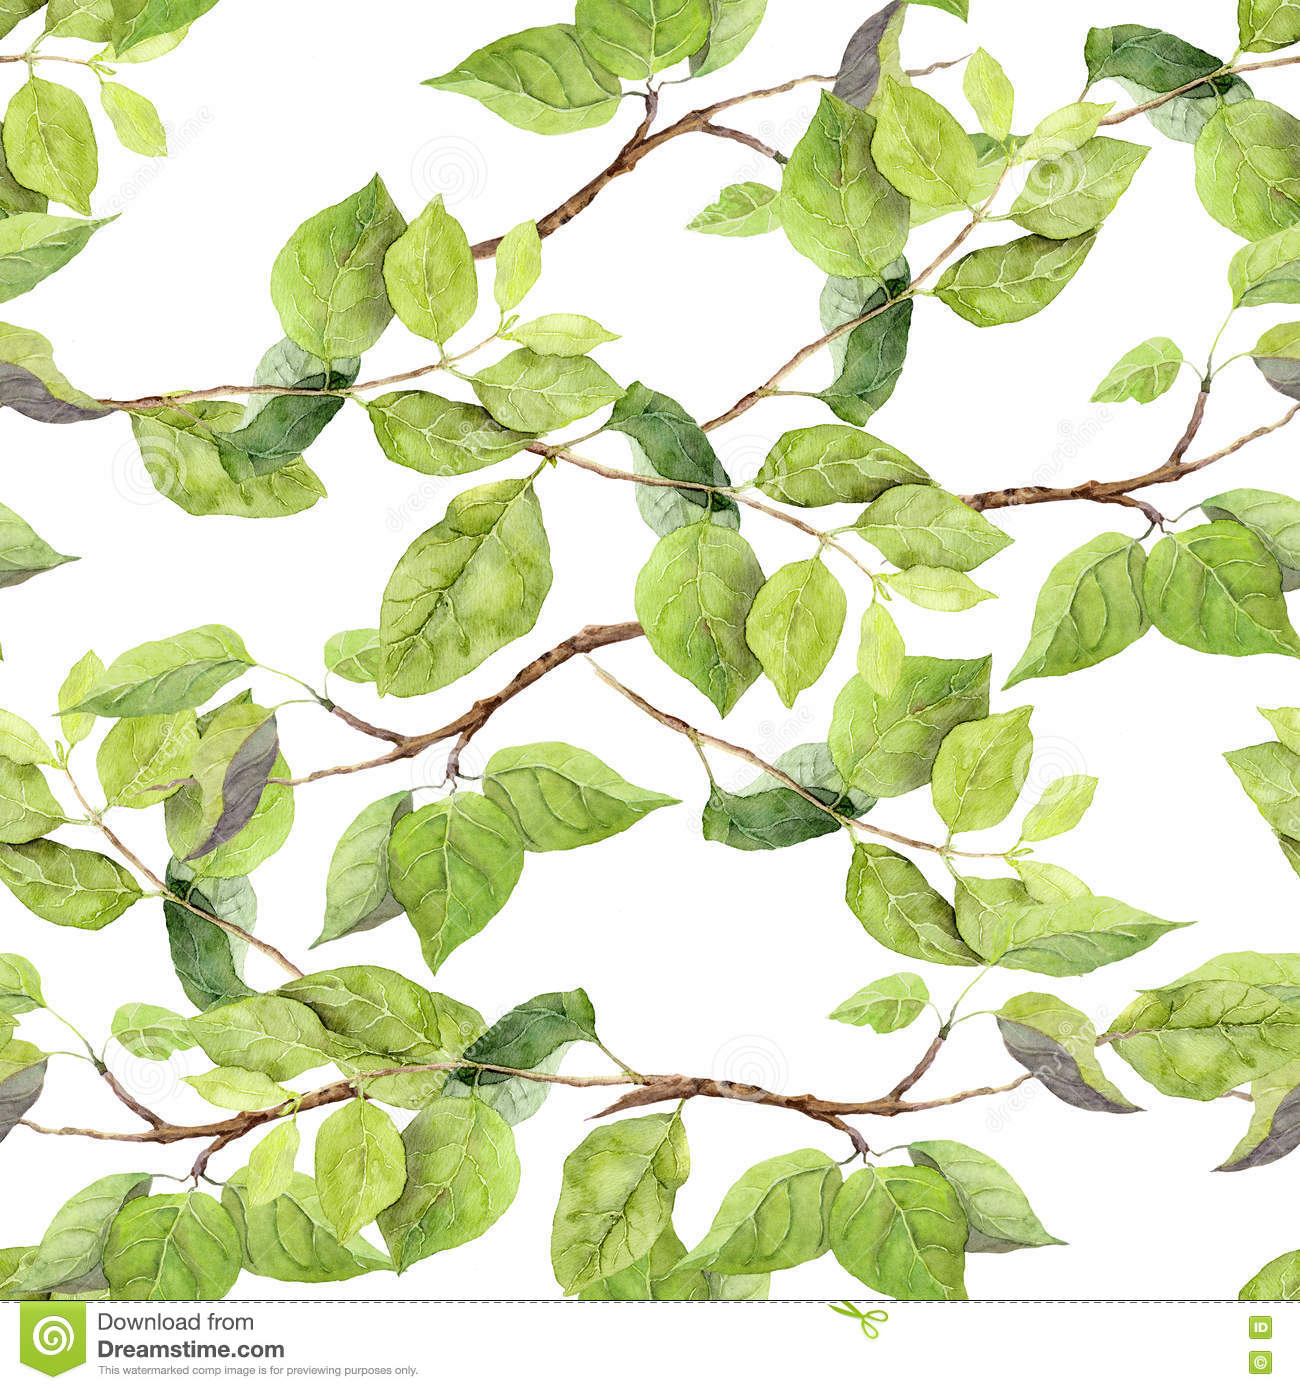 Green leaves. Seamless pattern. Watercolor